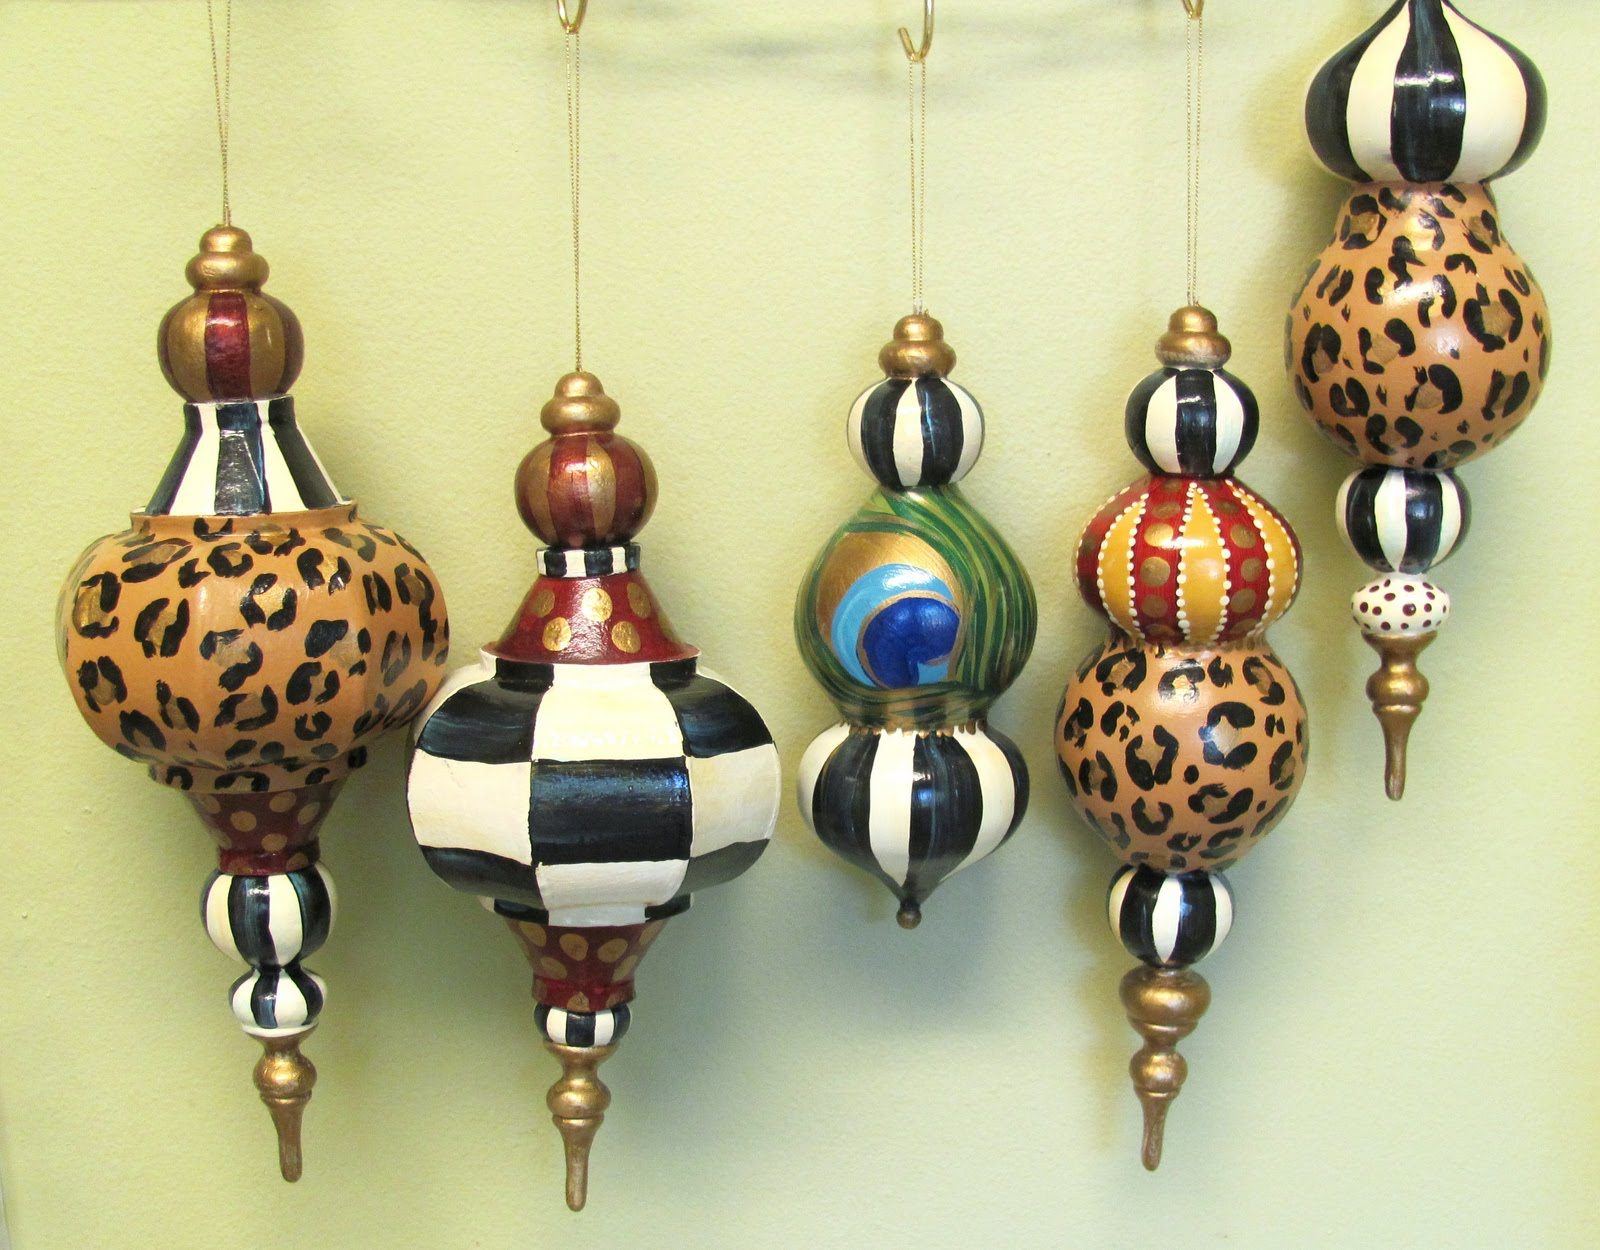 Lovely Diy Hand Painted Designer Finial Ornaments